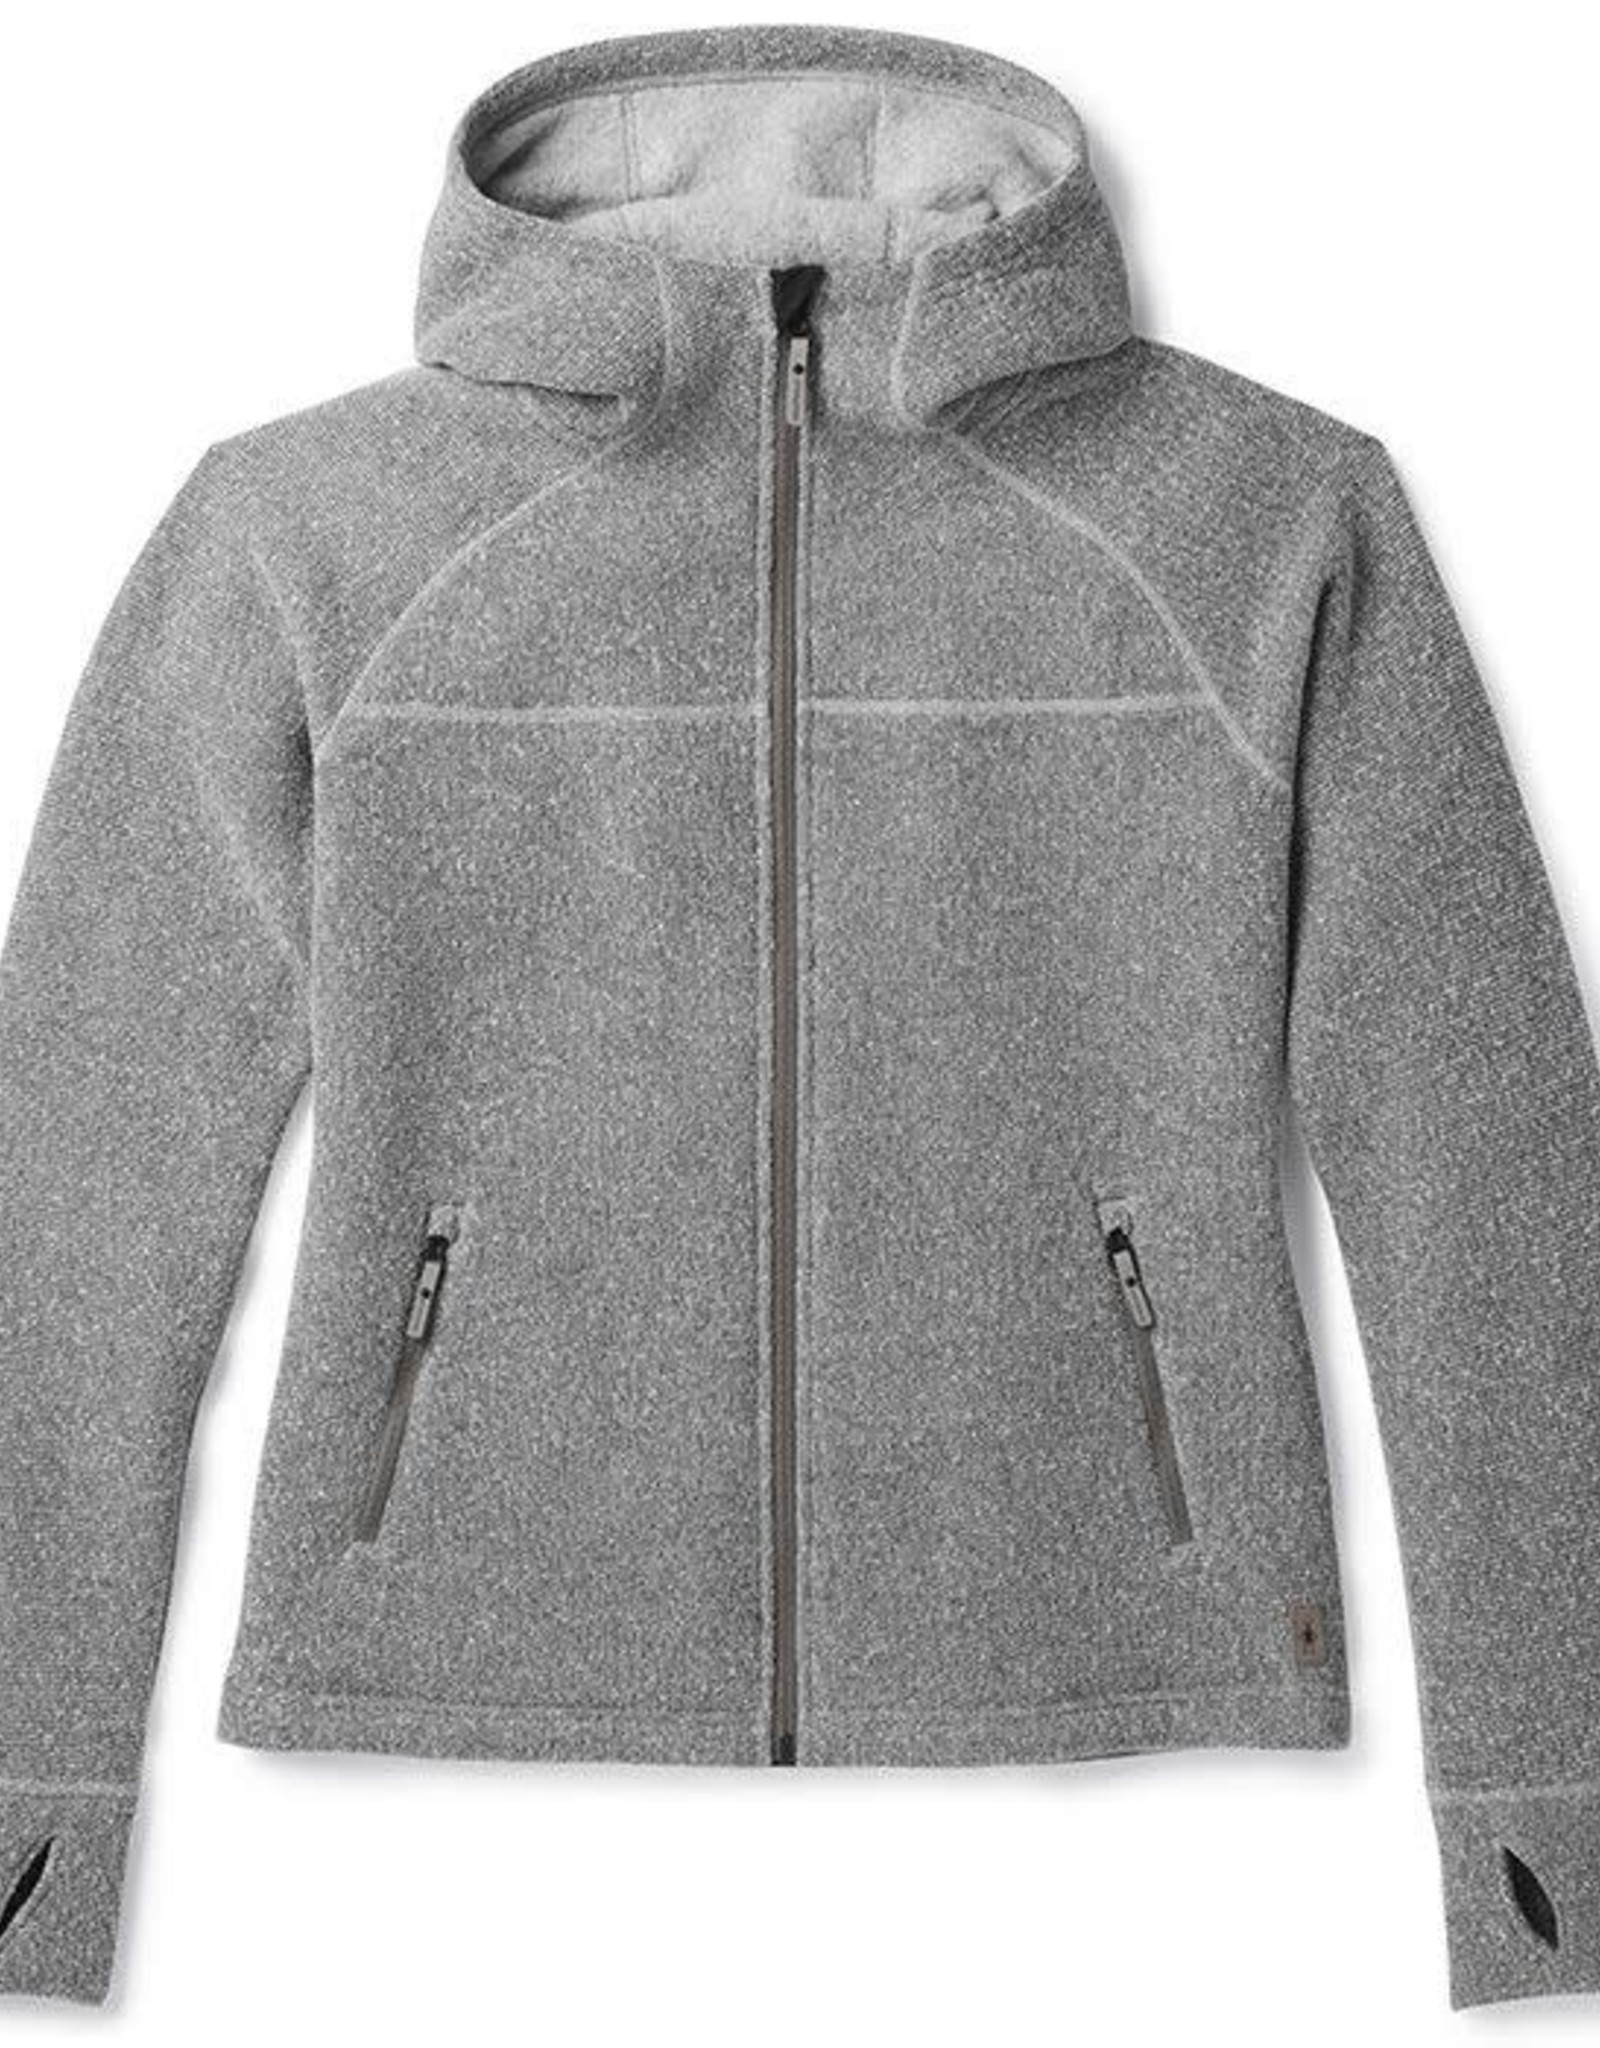 SMARTWOOL SmartWool Women's Hudson Trail Full Zip Fleece Sweater